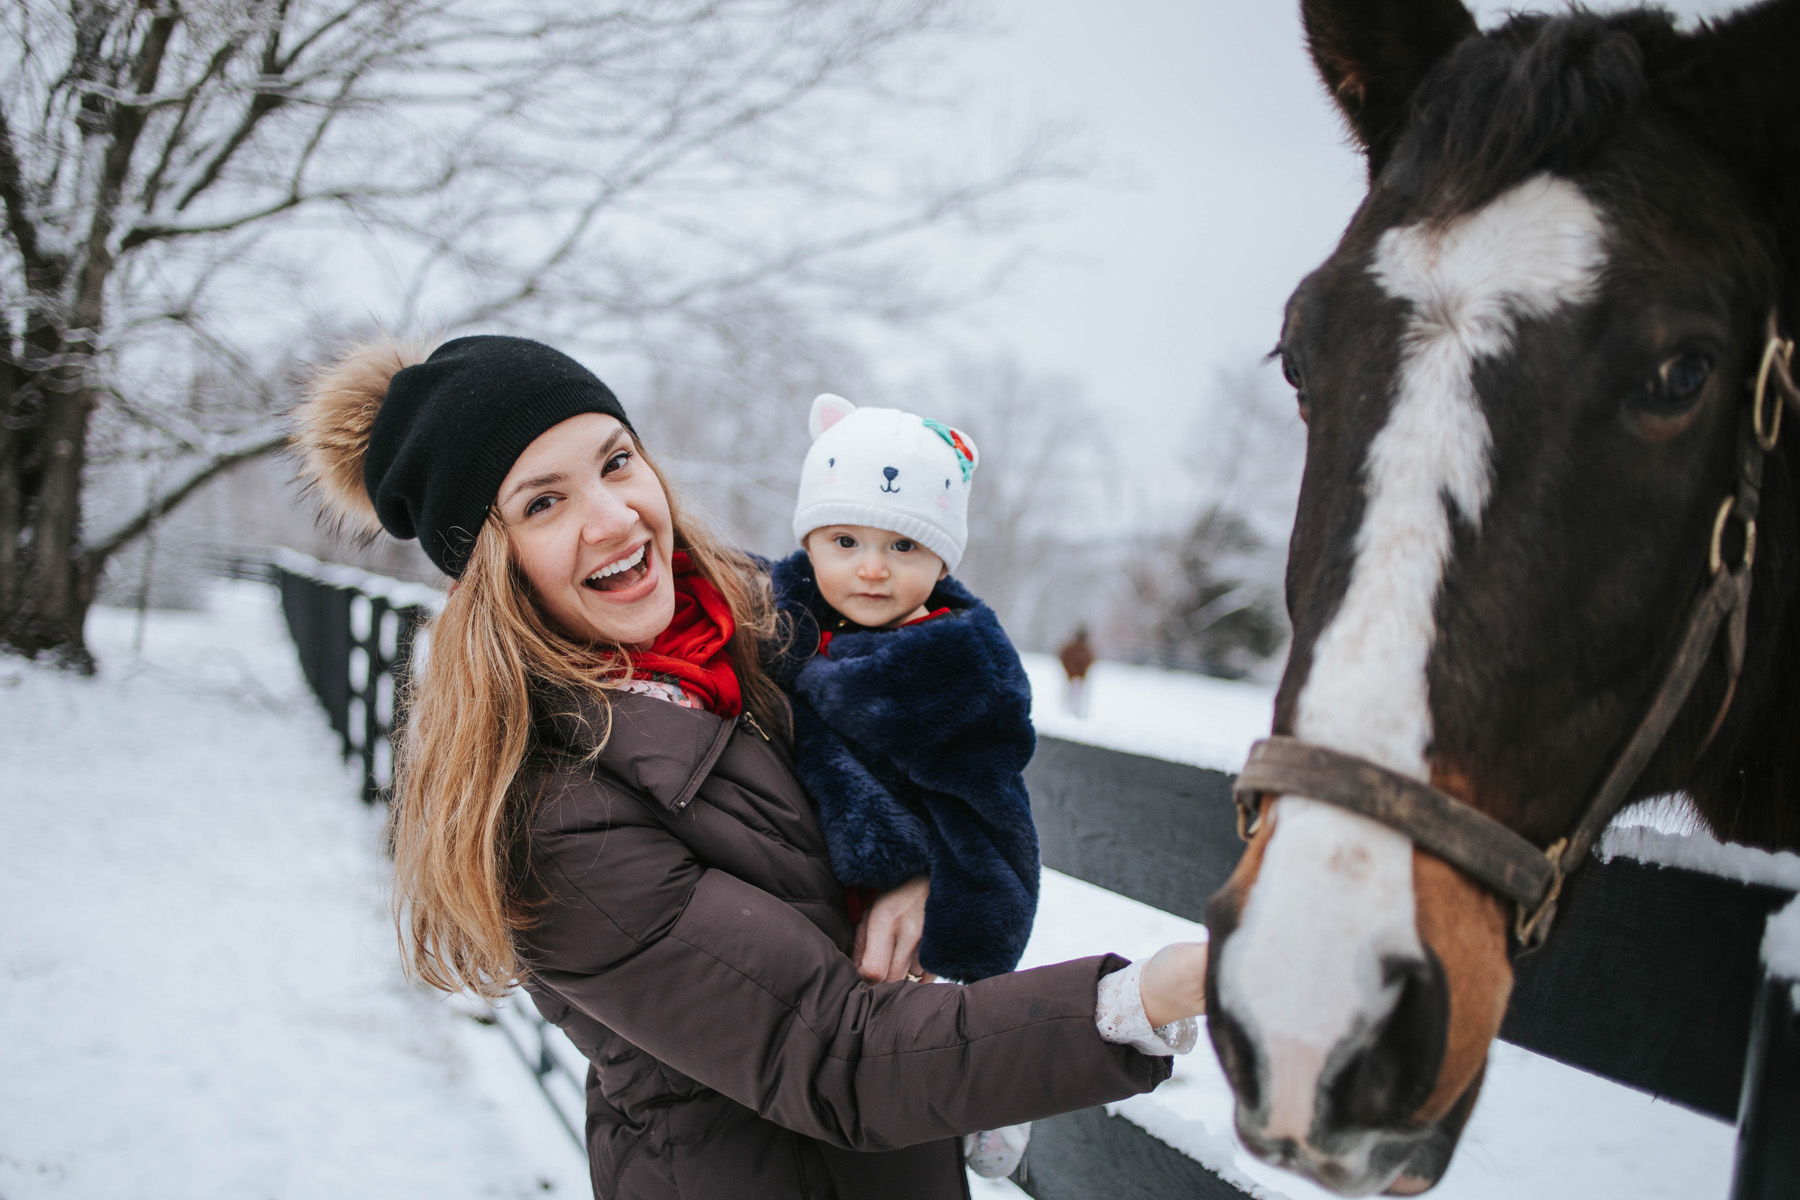 Dr. Tessa London, a middle-aged white woman with long brown wavy hair, stands in an snowy outdoor setting. She is smiling widely as she holds her youngest daughter and stands next to a horse. Both Dr. London and her daughter are wearing beanies and winter jackets.